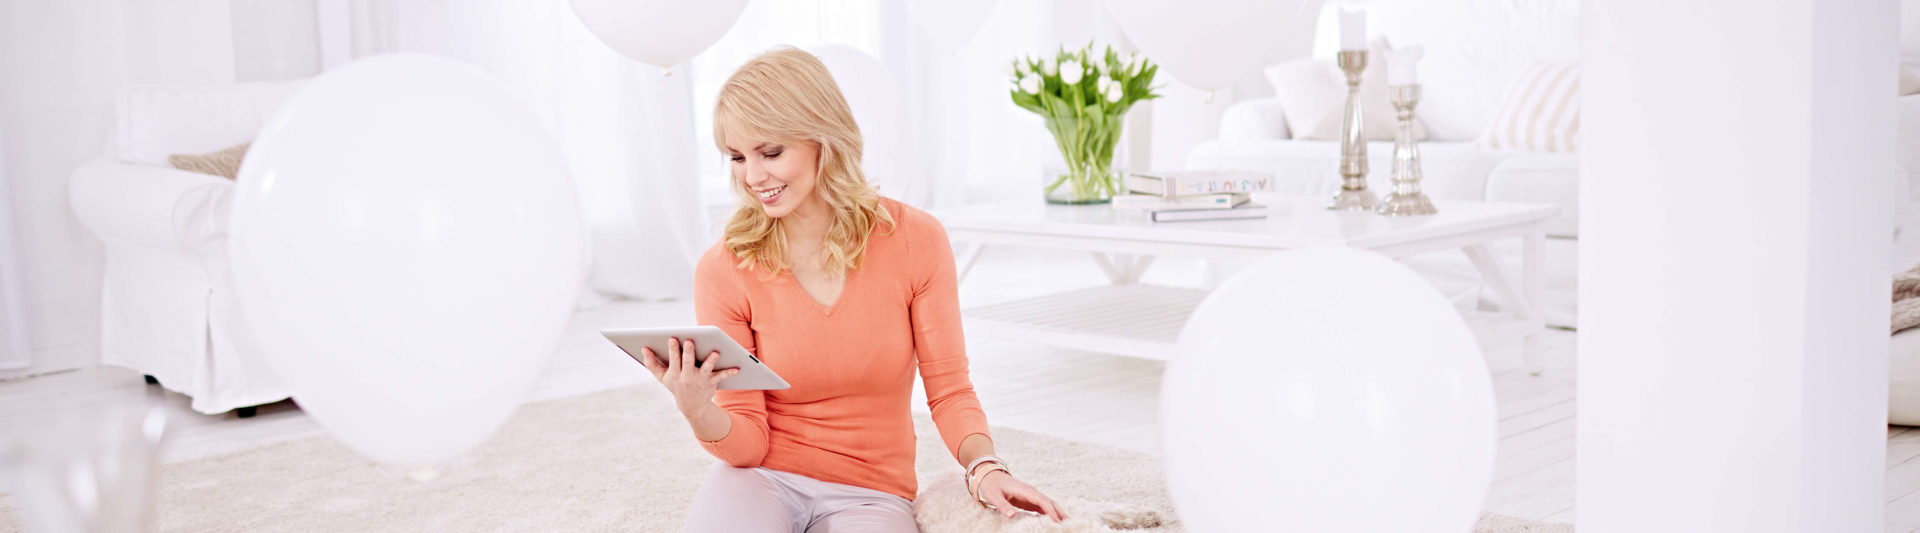 A woman sits on the carpet in the living room and holds a tablet computer in her hands. She reads happily on her tablet.